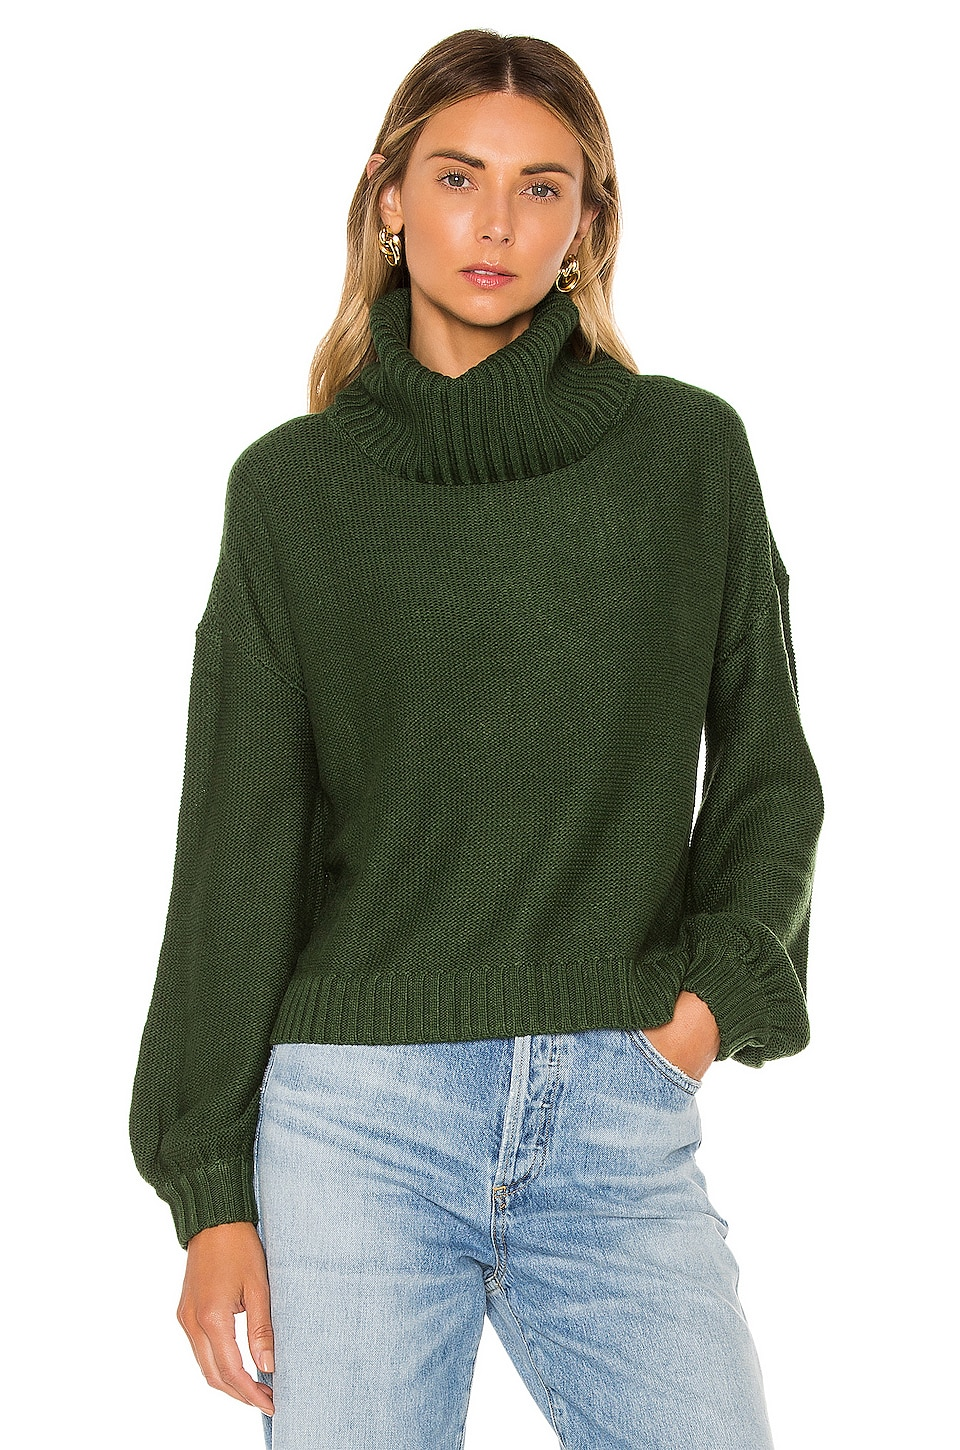 House of Harlow 1960 x REVOLVE Jaxson Sweater in Emerald